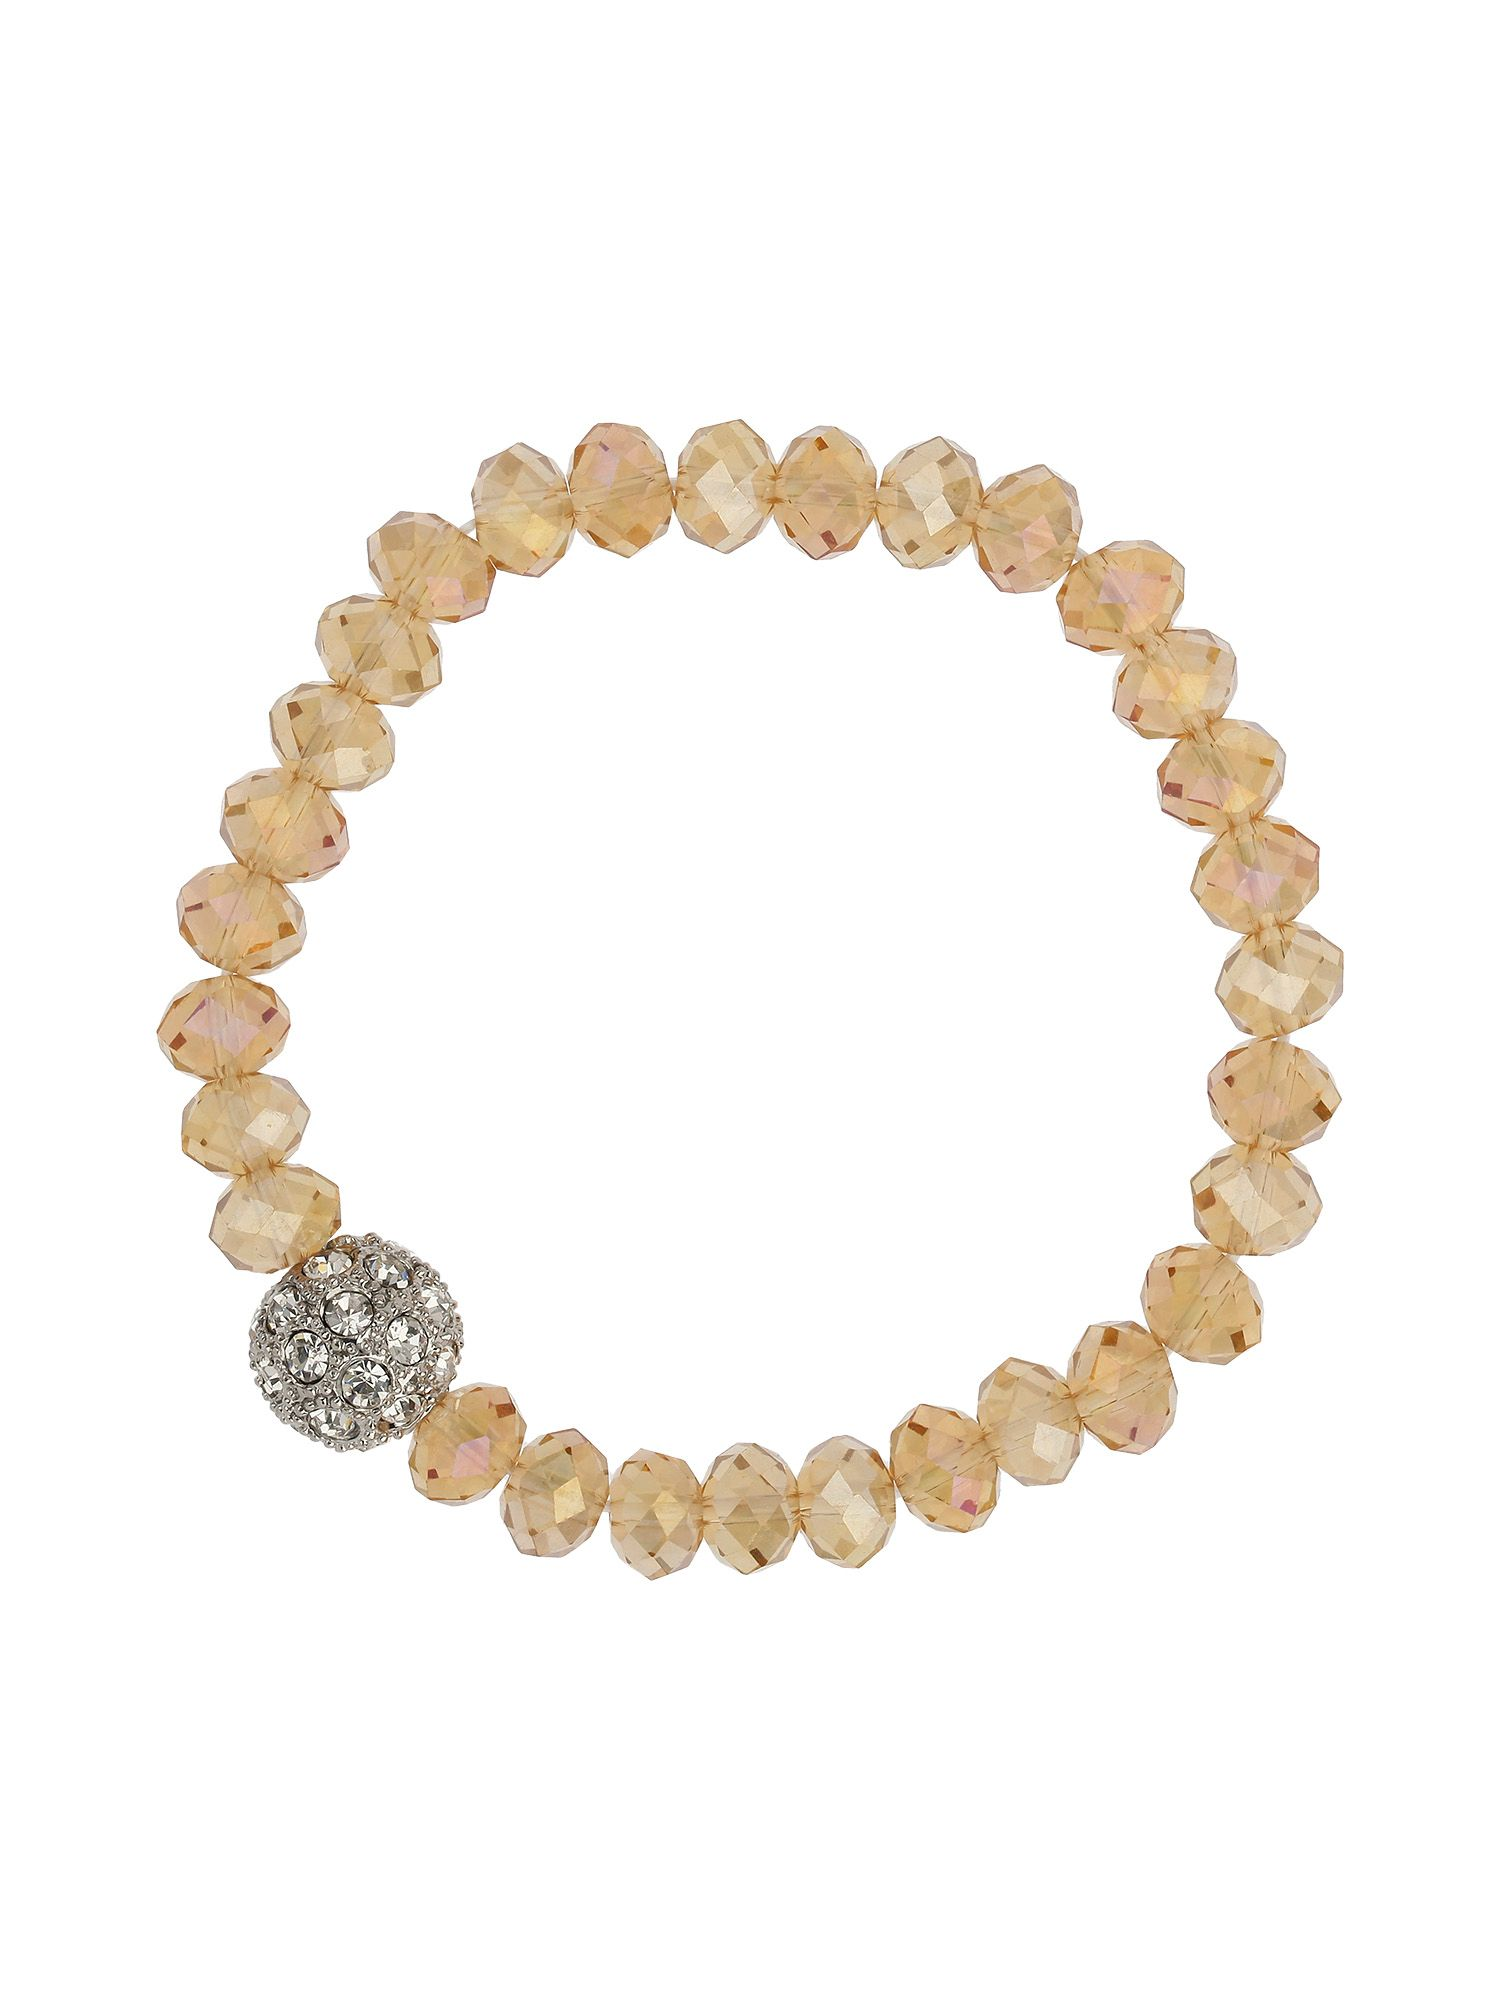 Crystal ball sw bead bracelet